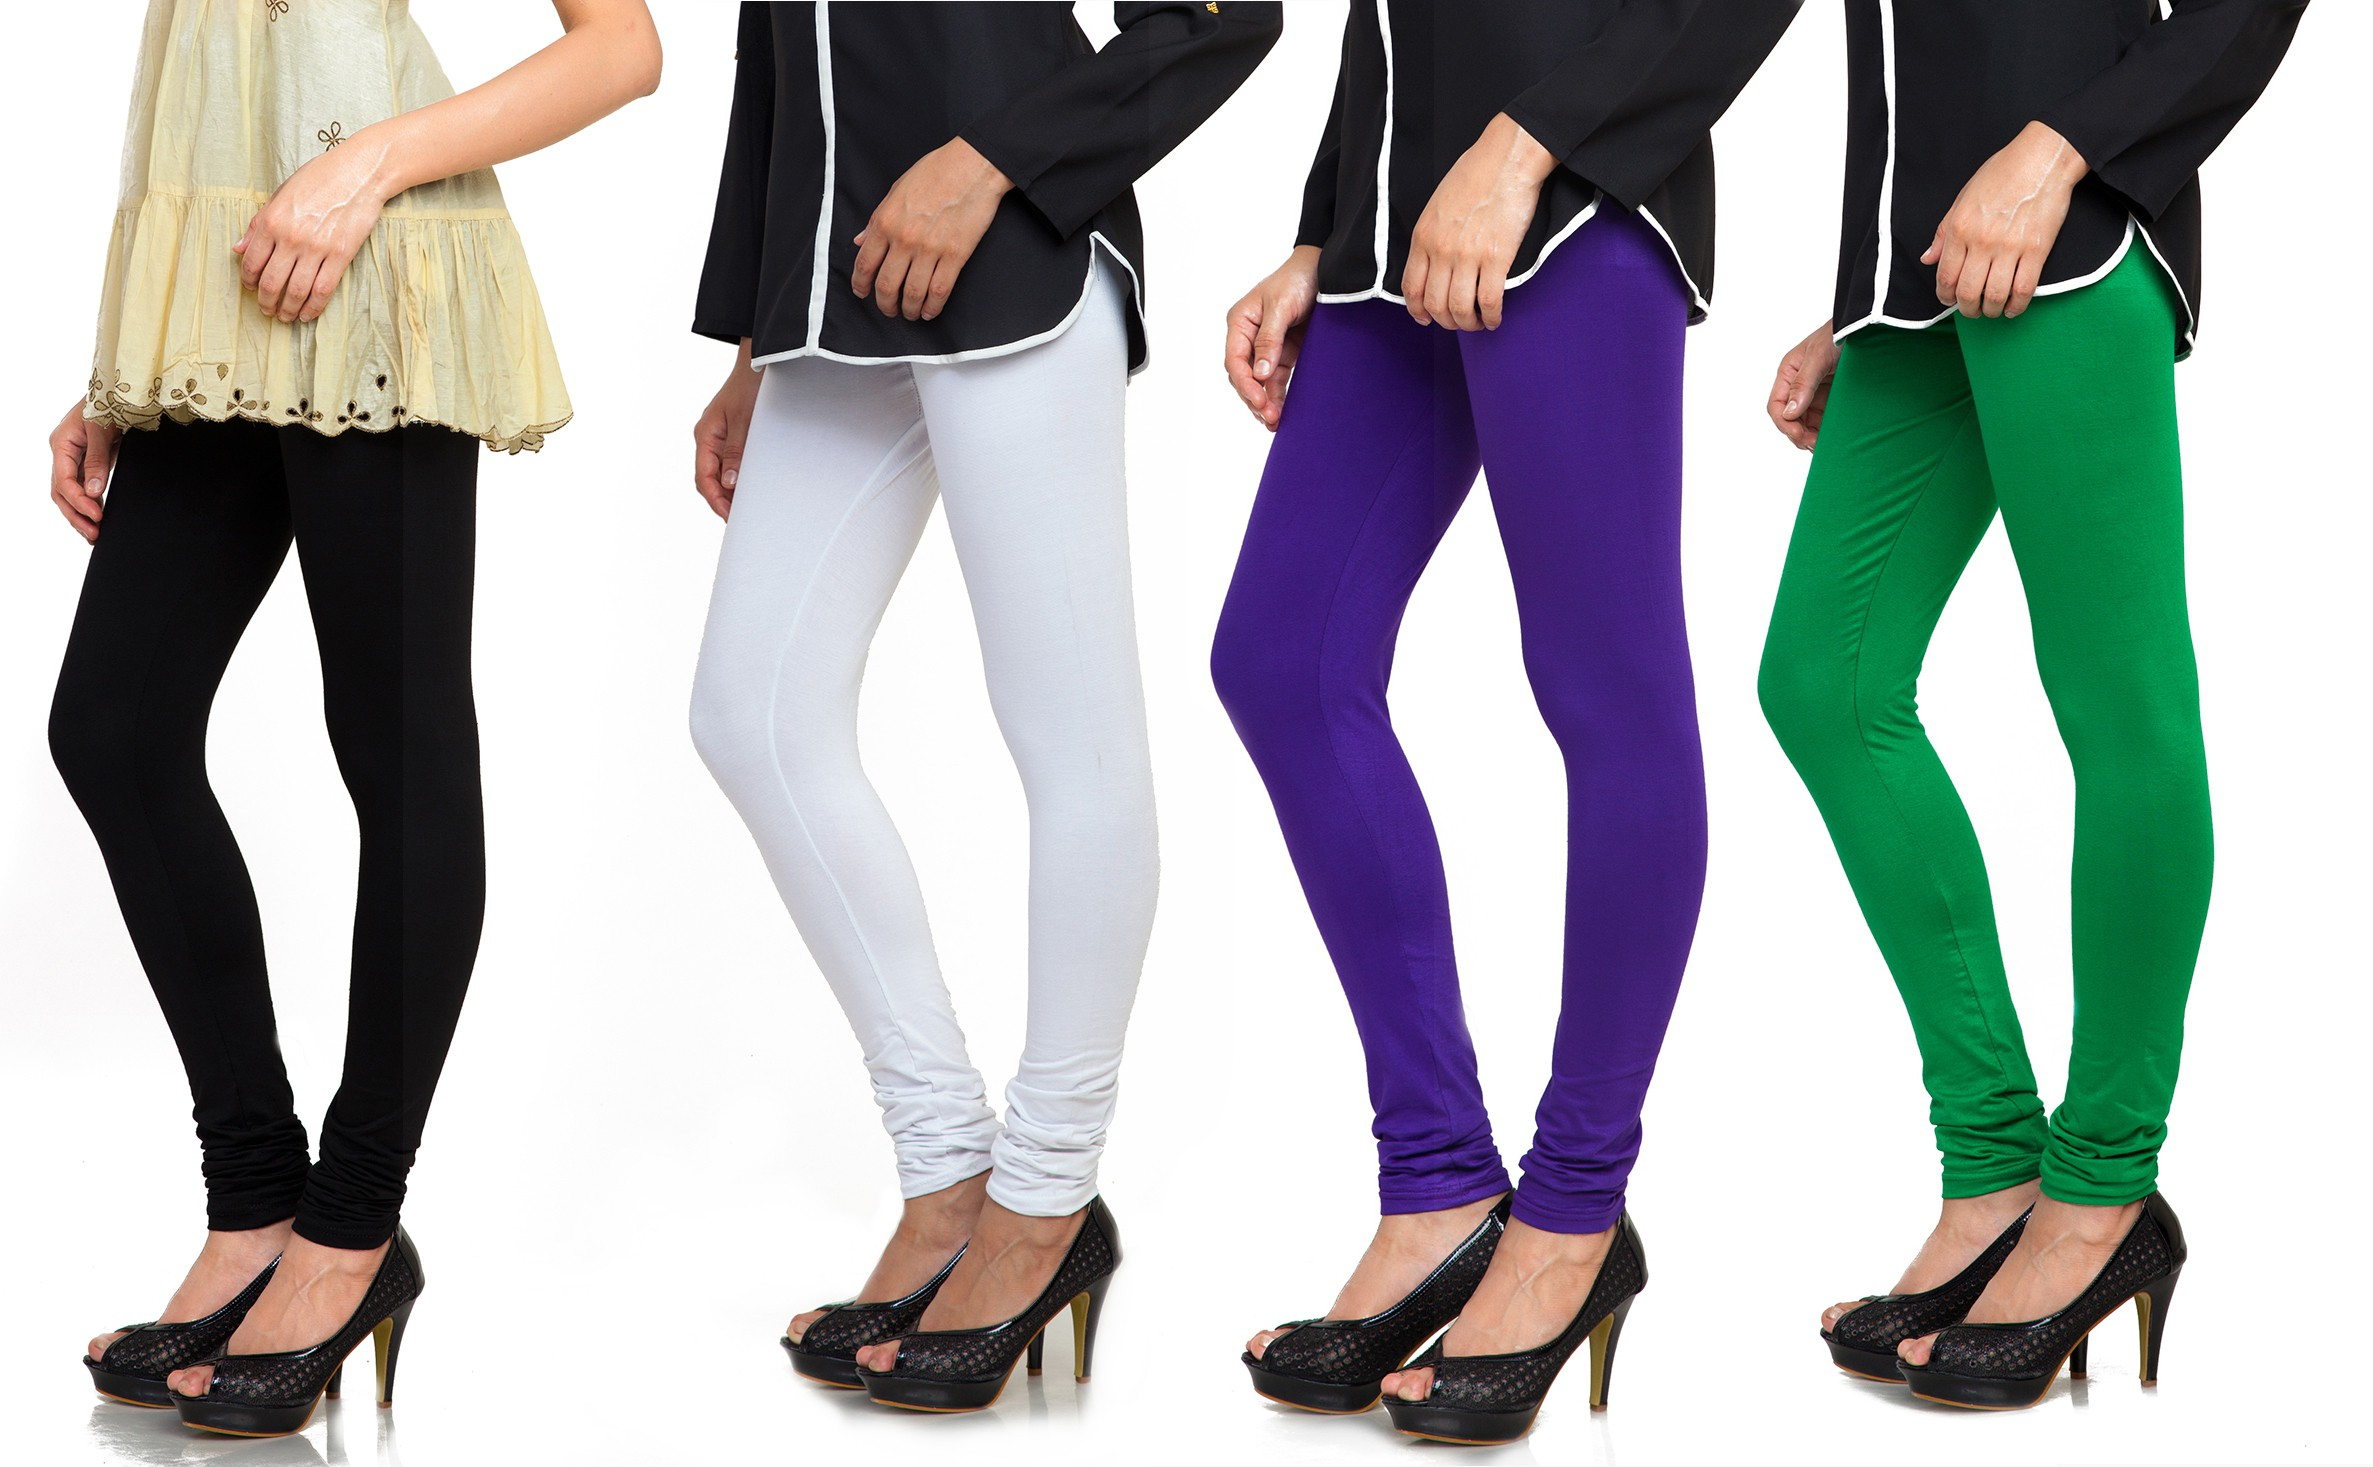 Bulbul Womens Black, White, Blue, Green Leggings(Pack of 4)